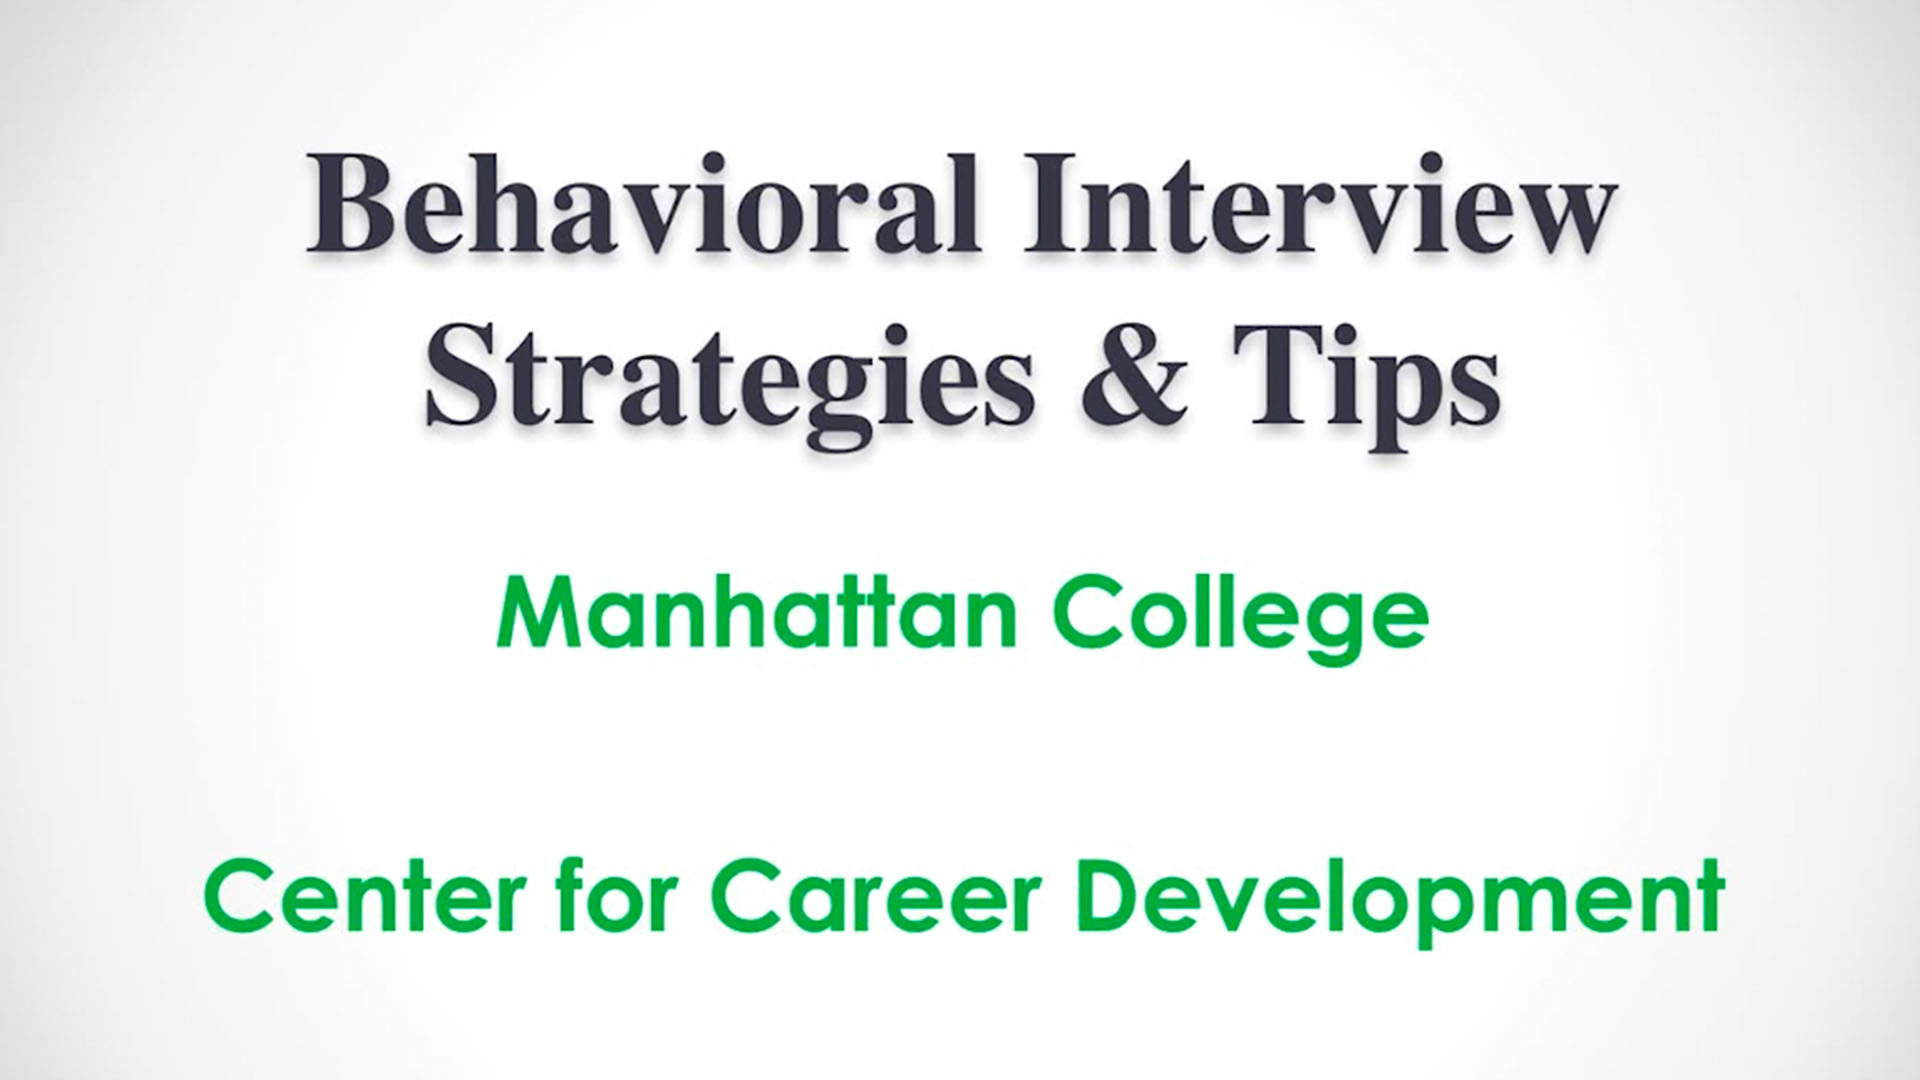 Interview Strategies and Tips - Manhattan College, Center for Career Development